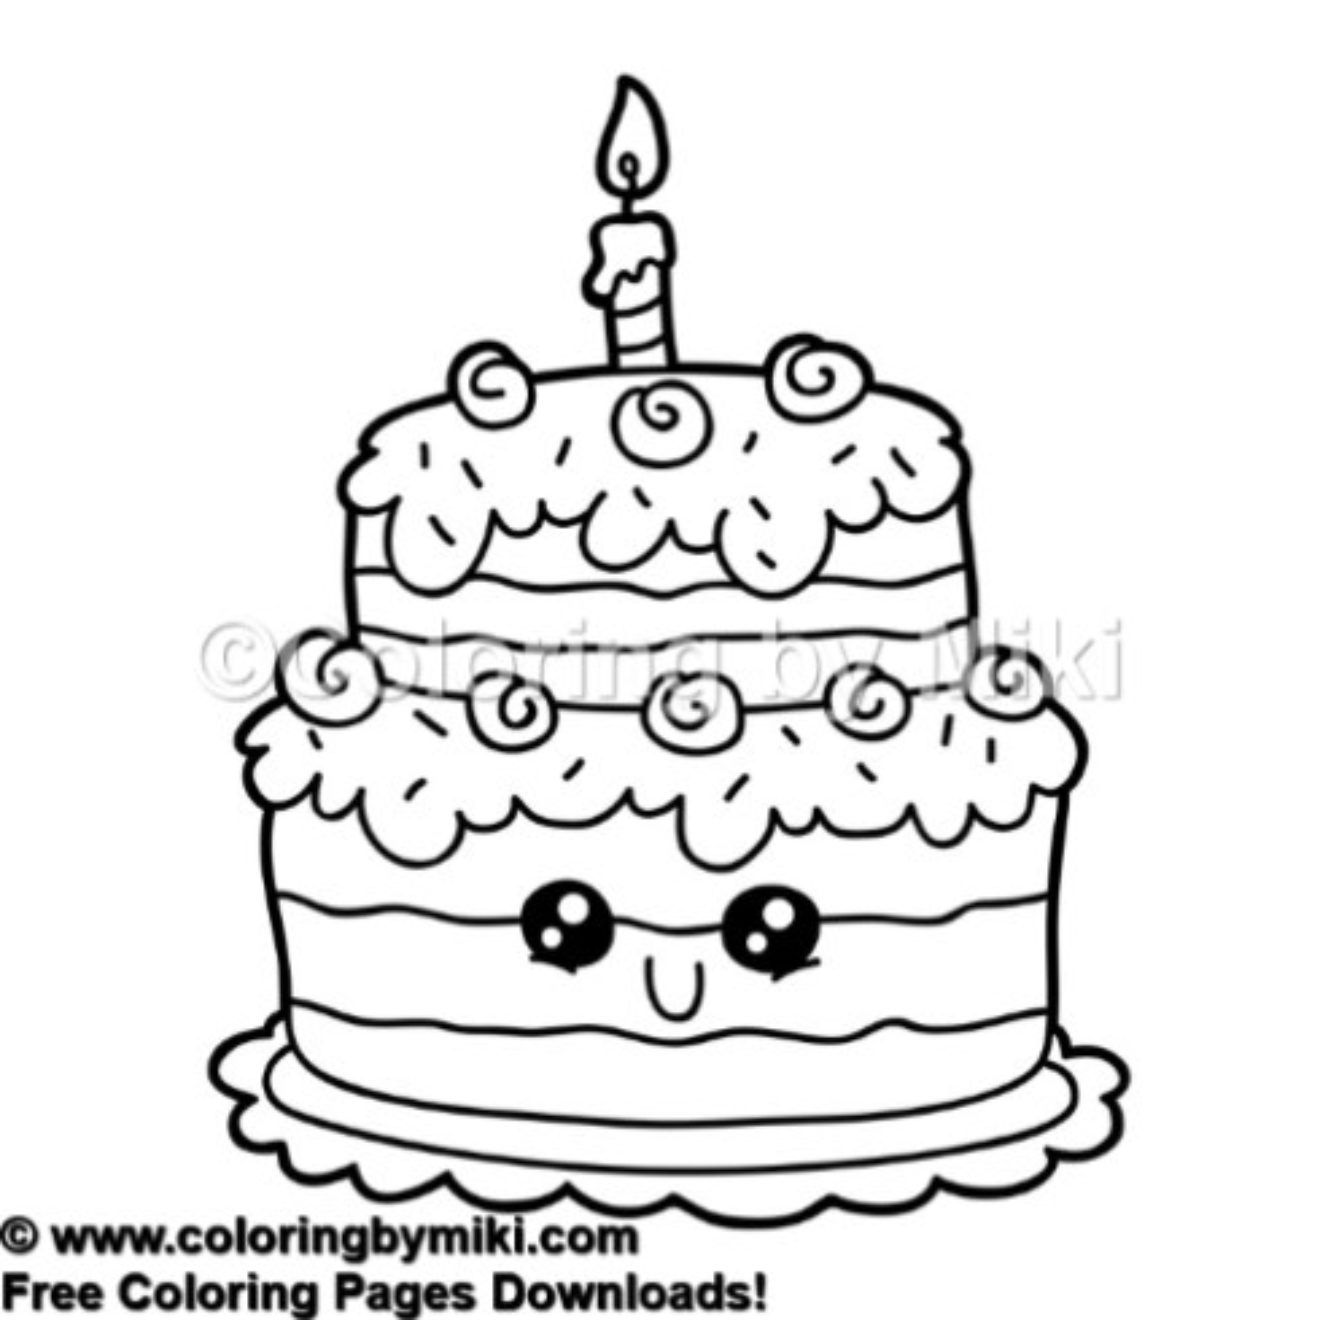 - Cute Birthday Cake Coloring Page 527 #kidsactivities